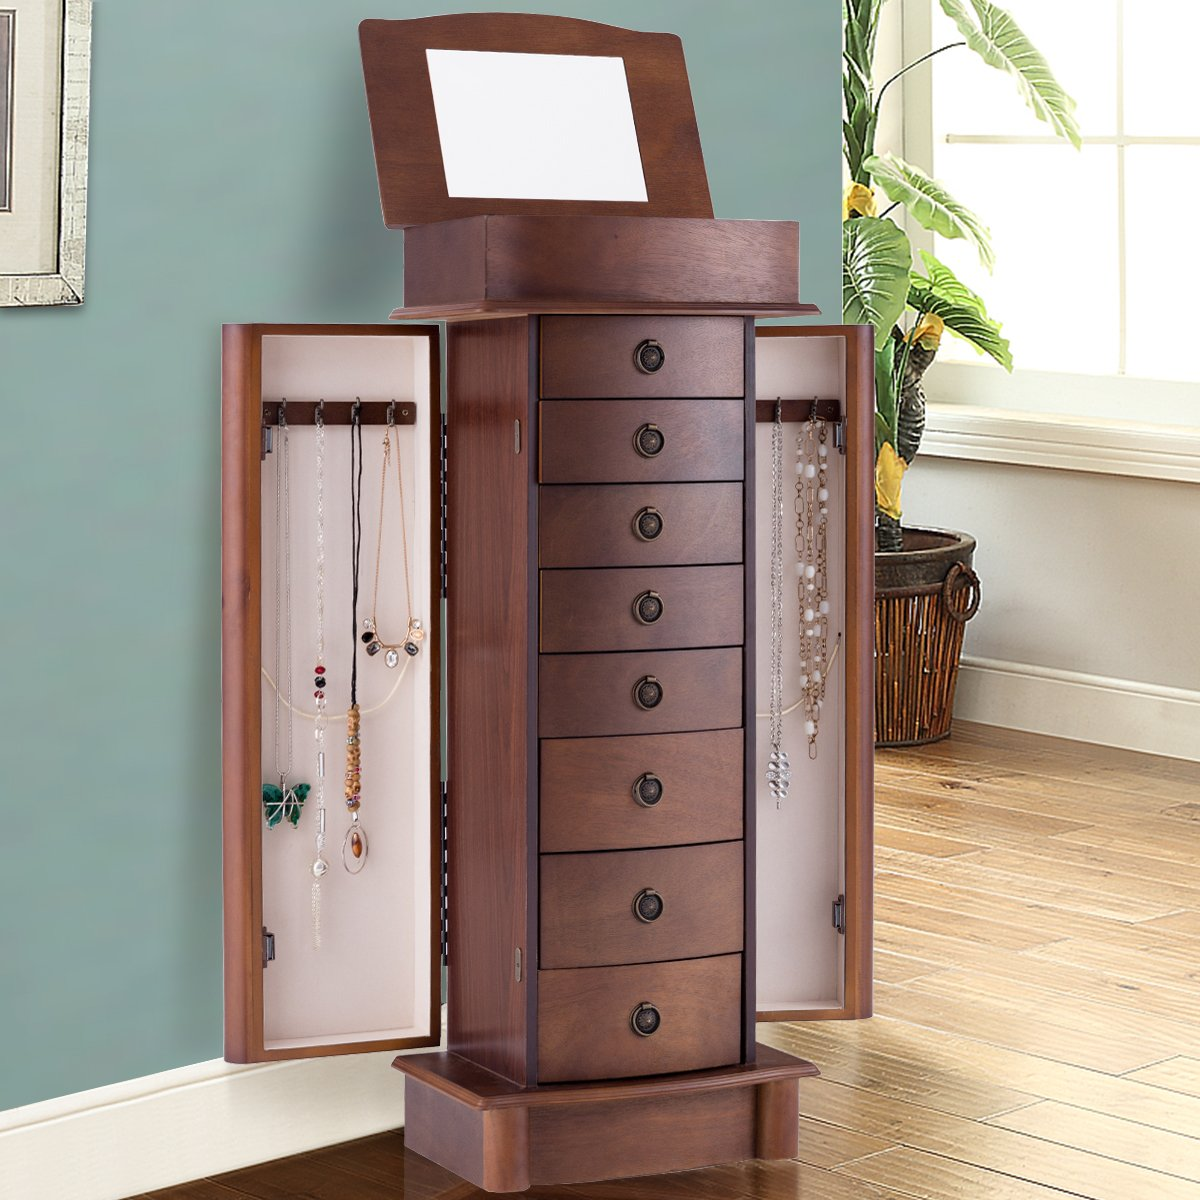 Giantex Armoire Jewelry Cabinet Box Storage Chest Wood Walnut Finish Stand Organizer Wood with Side Doors and 8 Drawers